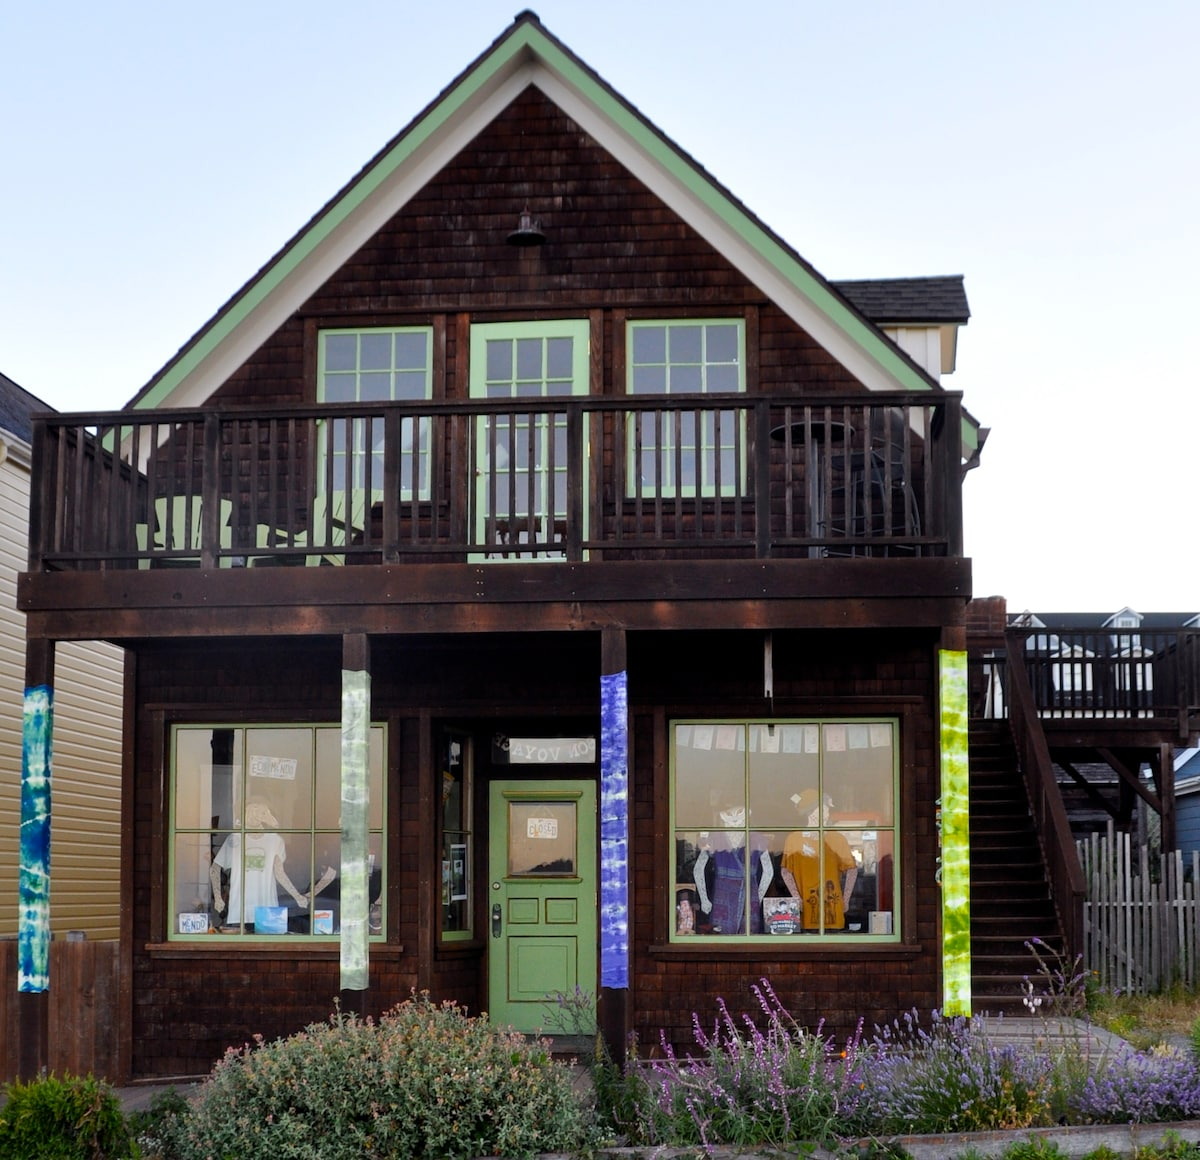 Seaside Studio is the upstairs apartment in a Category 1 historic building on the iconic Main Street of Mendocino. Building was built in 1875 and completely remodeled in 2006. The first floor is the eco friendly boutique Twist.